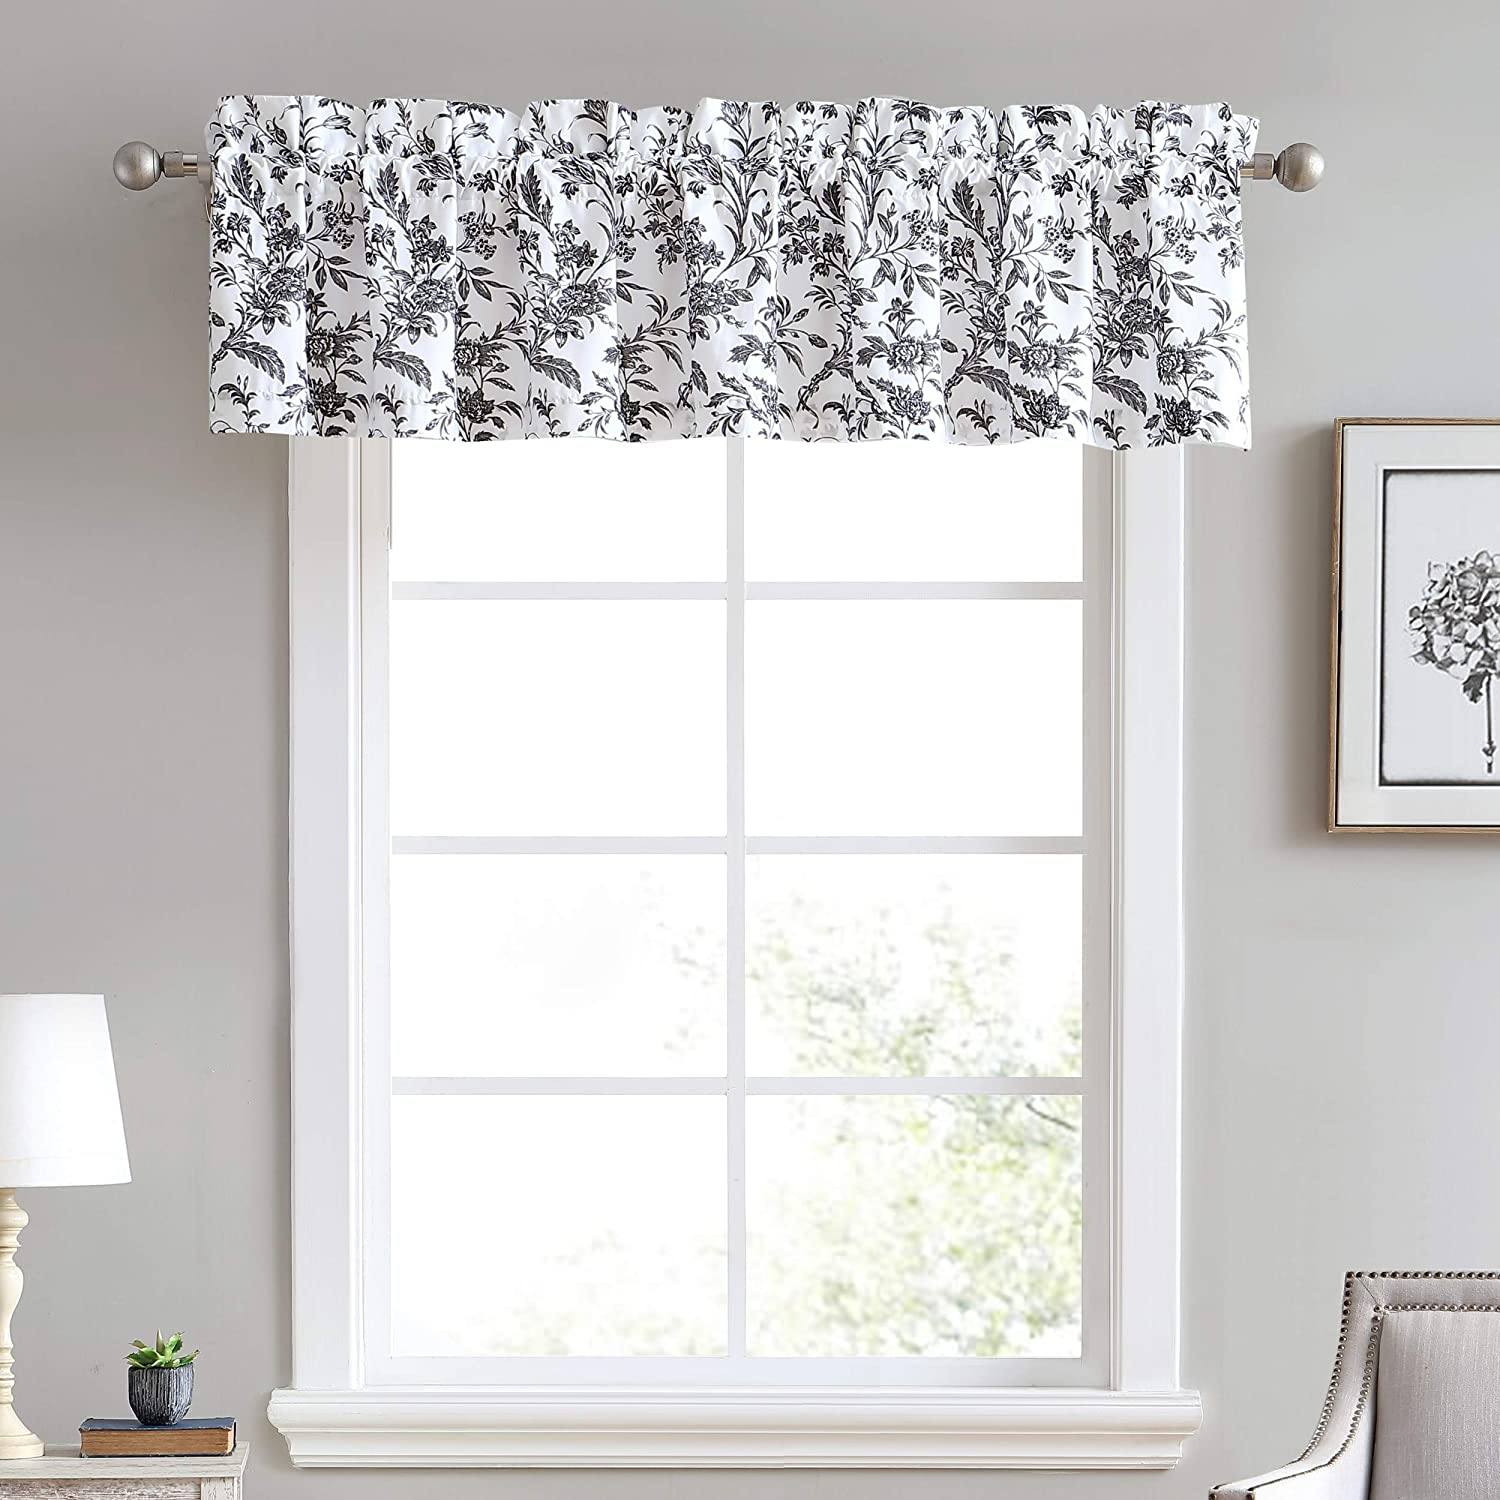 Amazon Com Laura Ashley Home Amberley Bedding Collection Stylish Premium Hotel Quality Valance Curtain Chic Decorative Window Treatment For Home Decor 86 X 15 Black White Home Kitchen